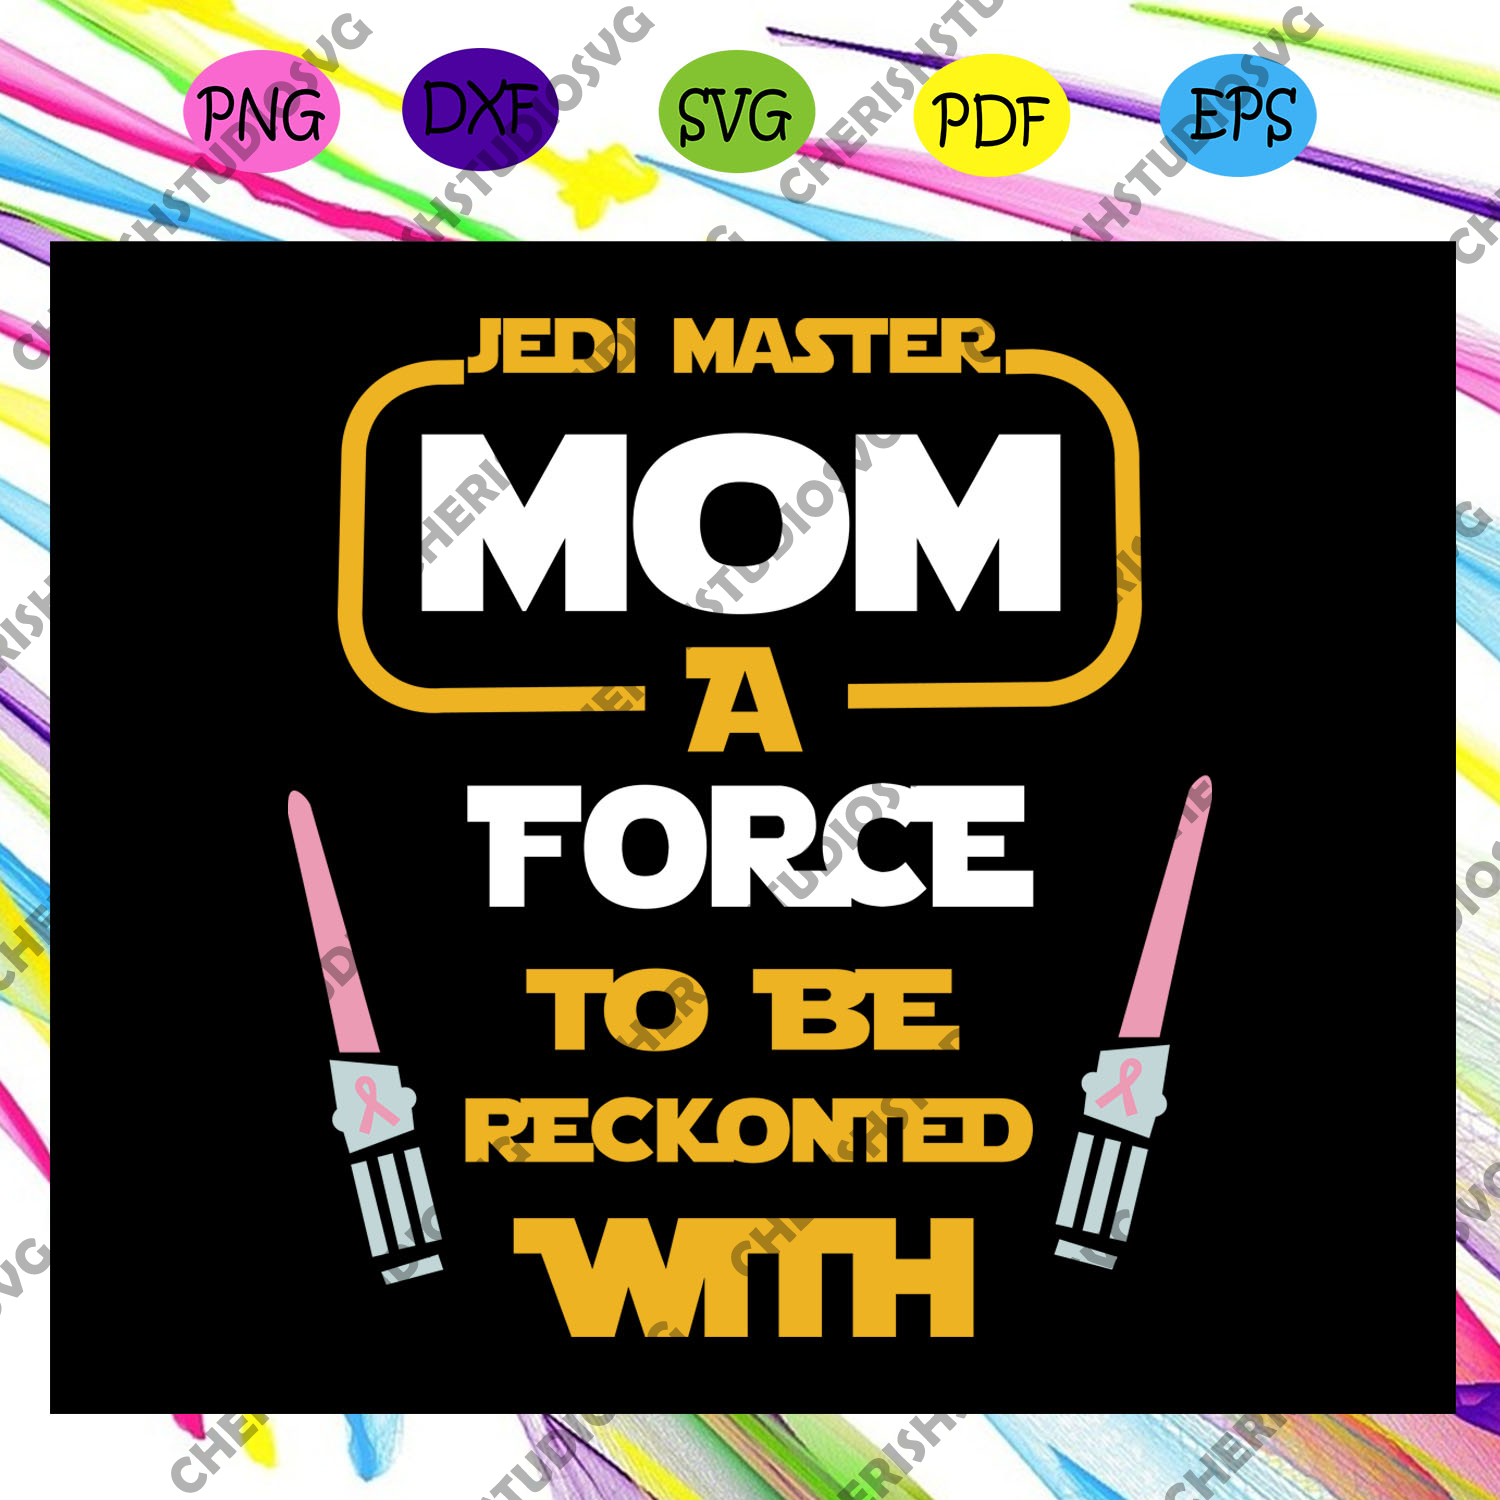 Disney Star Wars, Jedi Master Mom I Am, force to be reckonted with, Digital, Download, TShirt, Cut File, SVG, Iron on, Transfer, Star Wars shirt, star wars clipart,